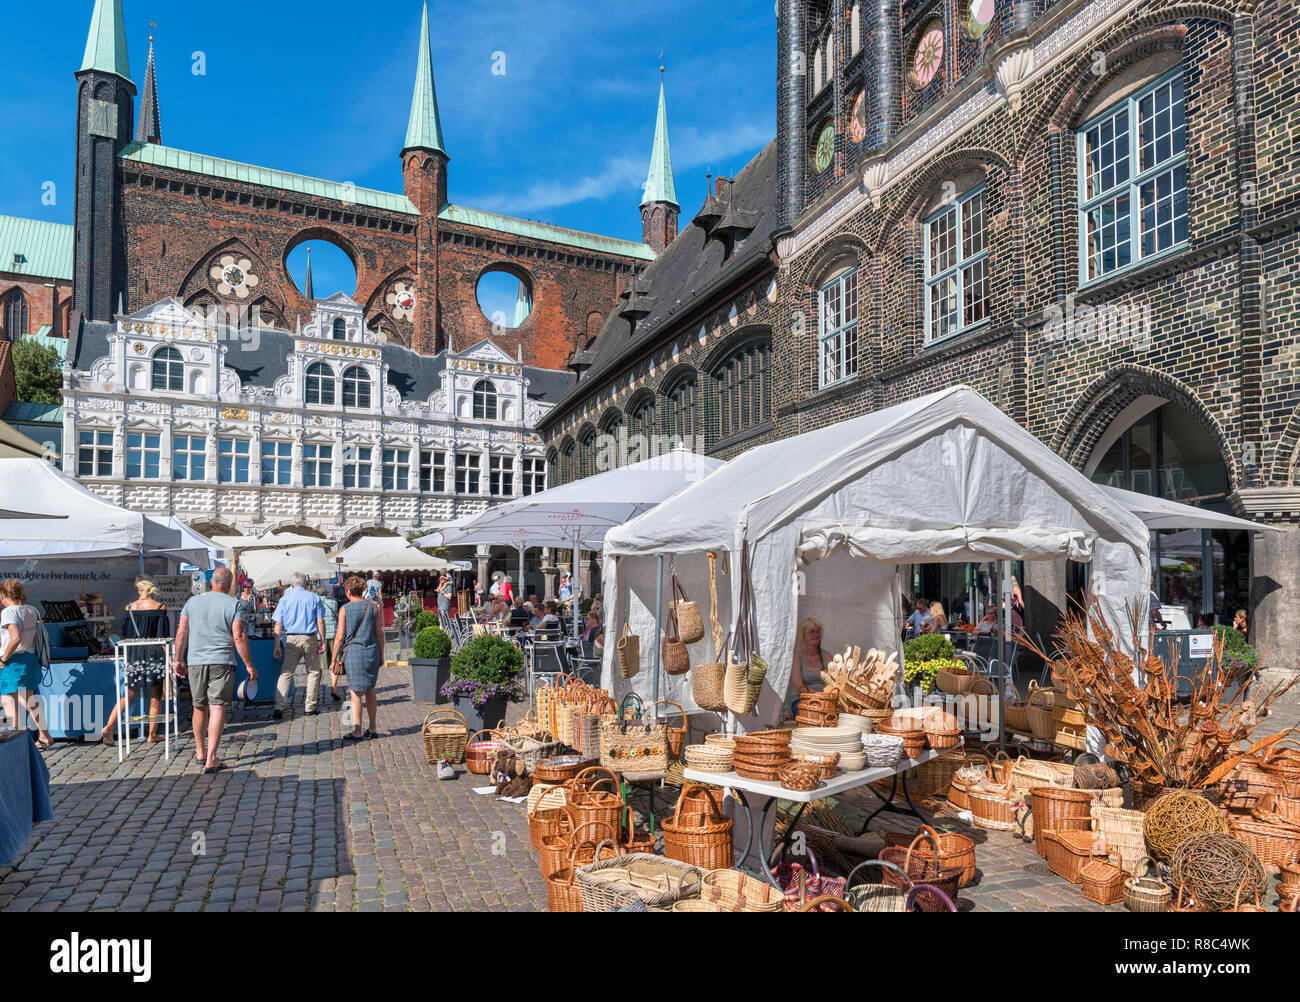 Sunday market in front of the historic 13th century Rathaus (Town Hall), Markt, Lubeck, Schleswig-Holstein, Germany - Stock Image